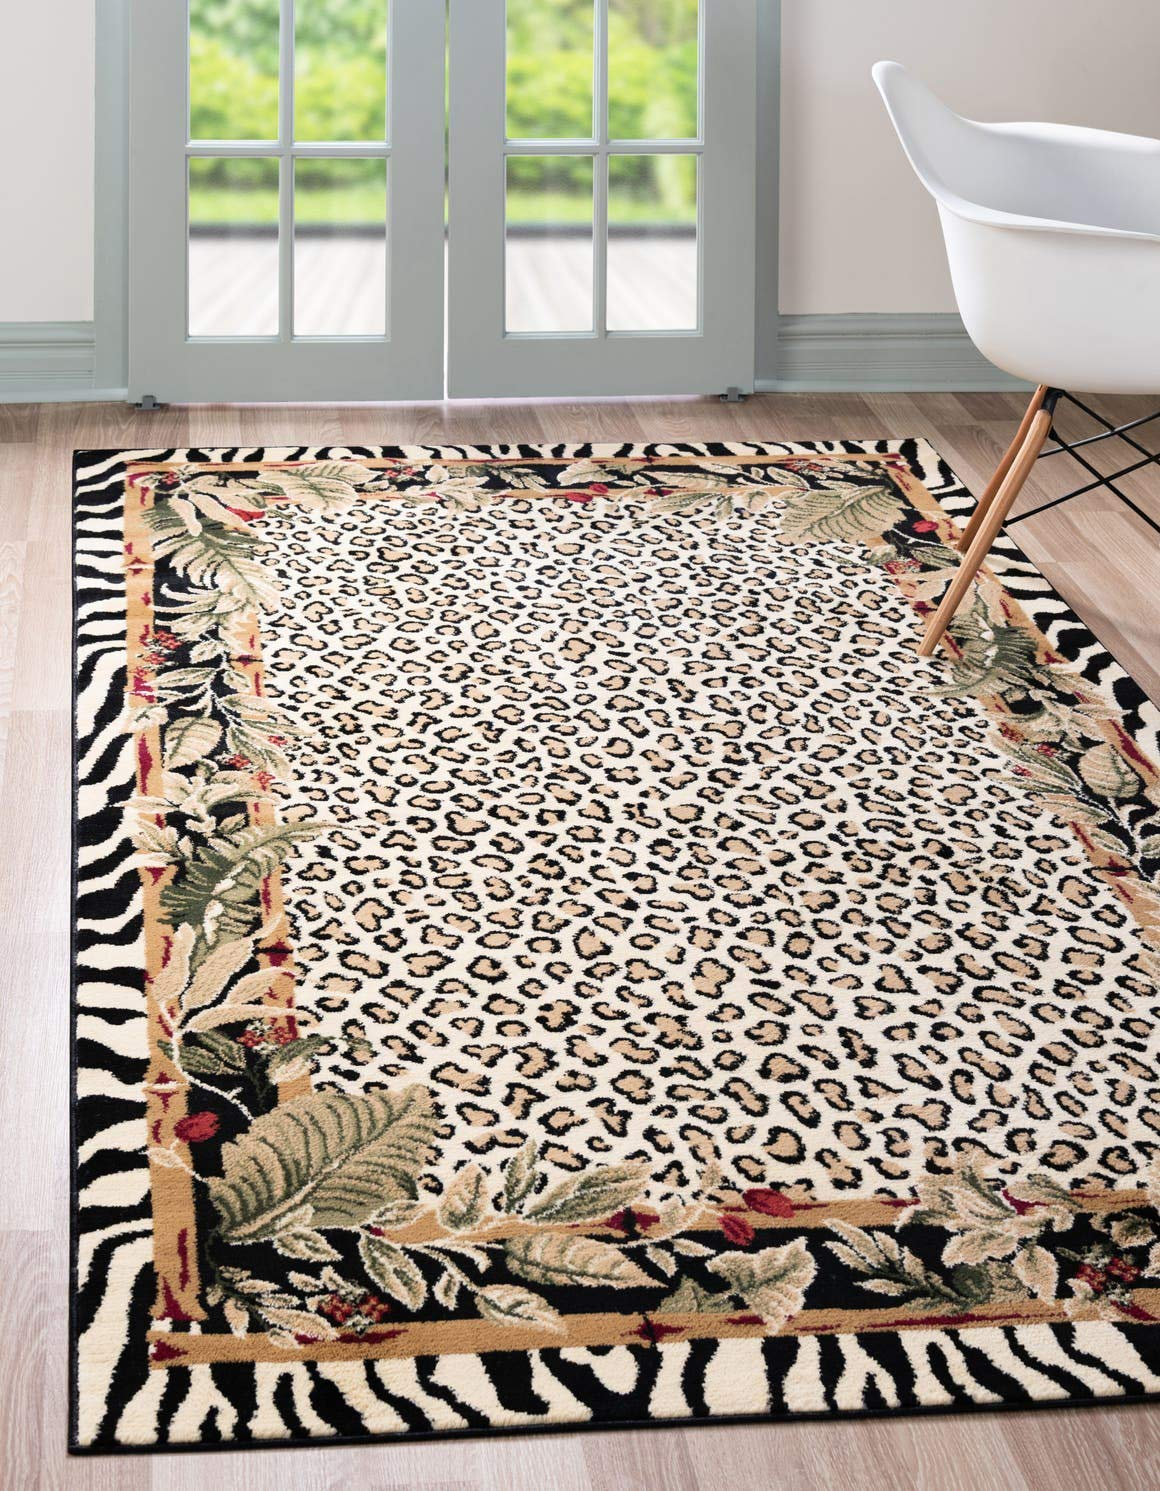 Unique Loom Wildlife Collection Cheetah Botanical Border Animal Print Cream Area Rug 3 3 x 5 3